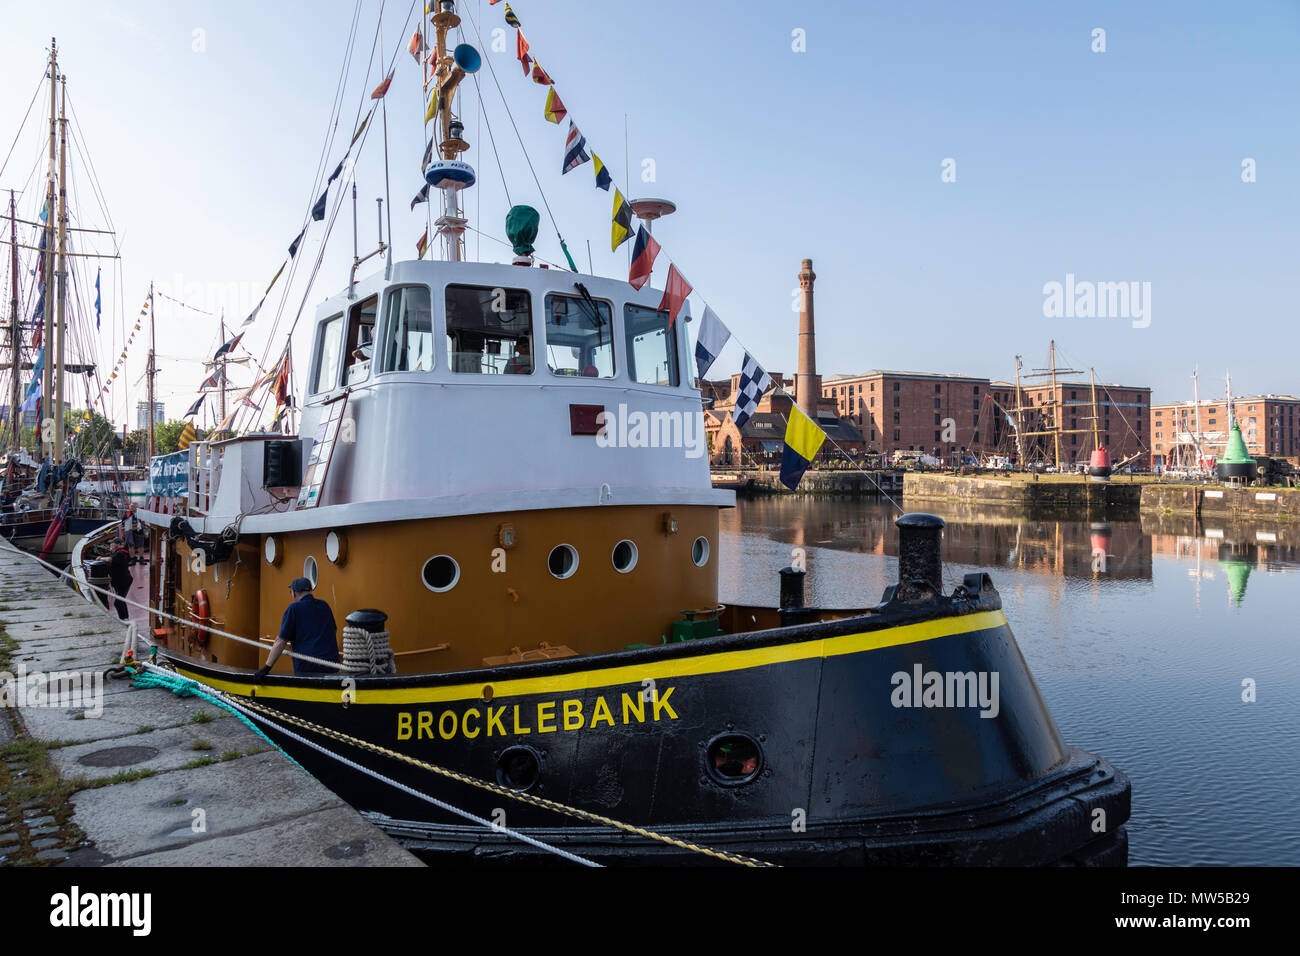 The tug boat Brocklebank moored in Canning Dock for the Liverpool Tall Ships Festival May 2018 - Stock Image